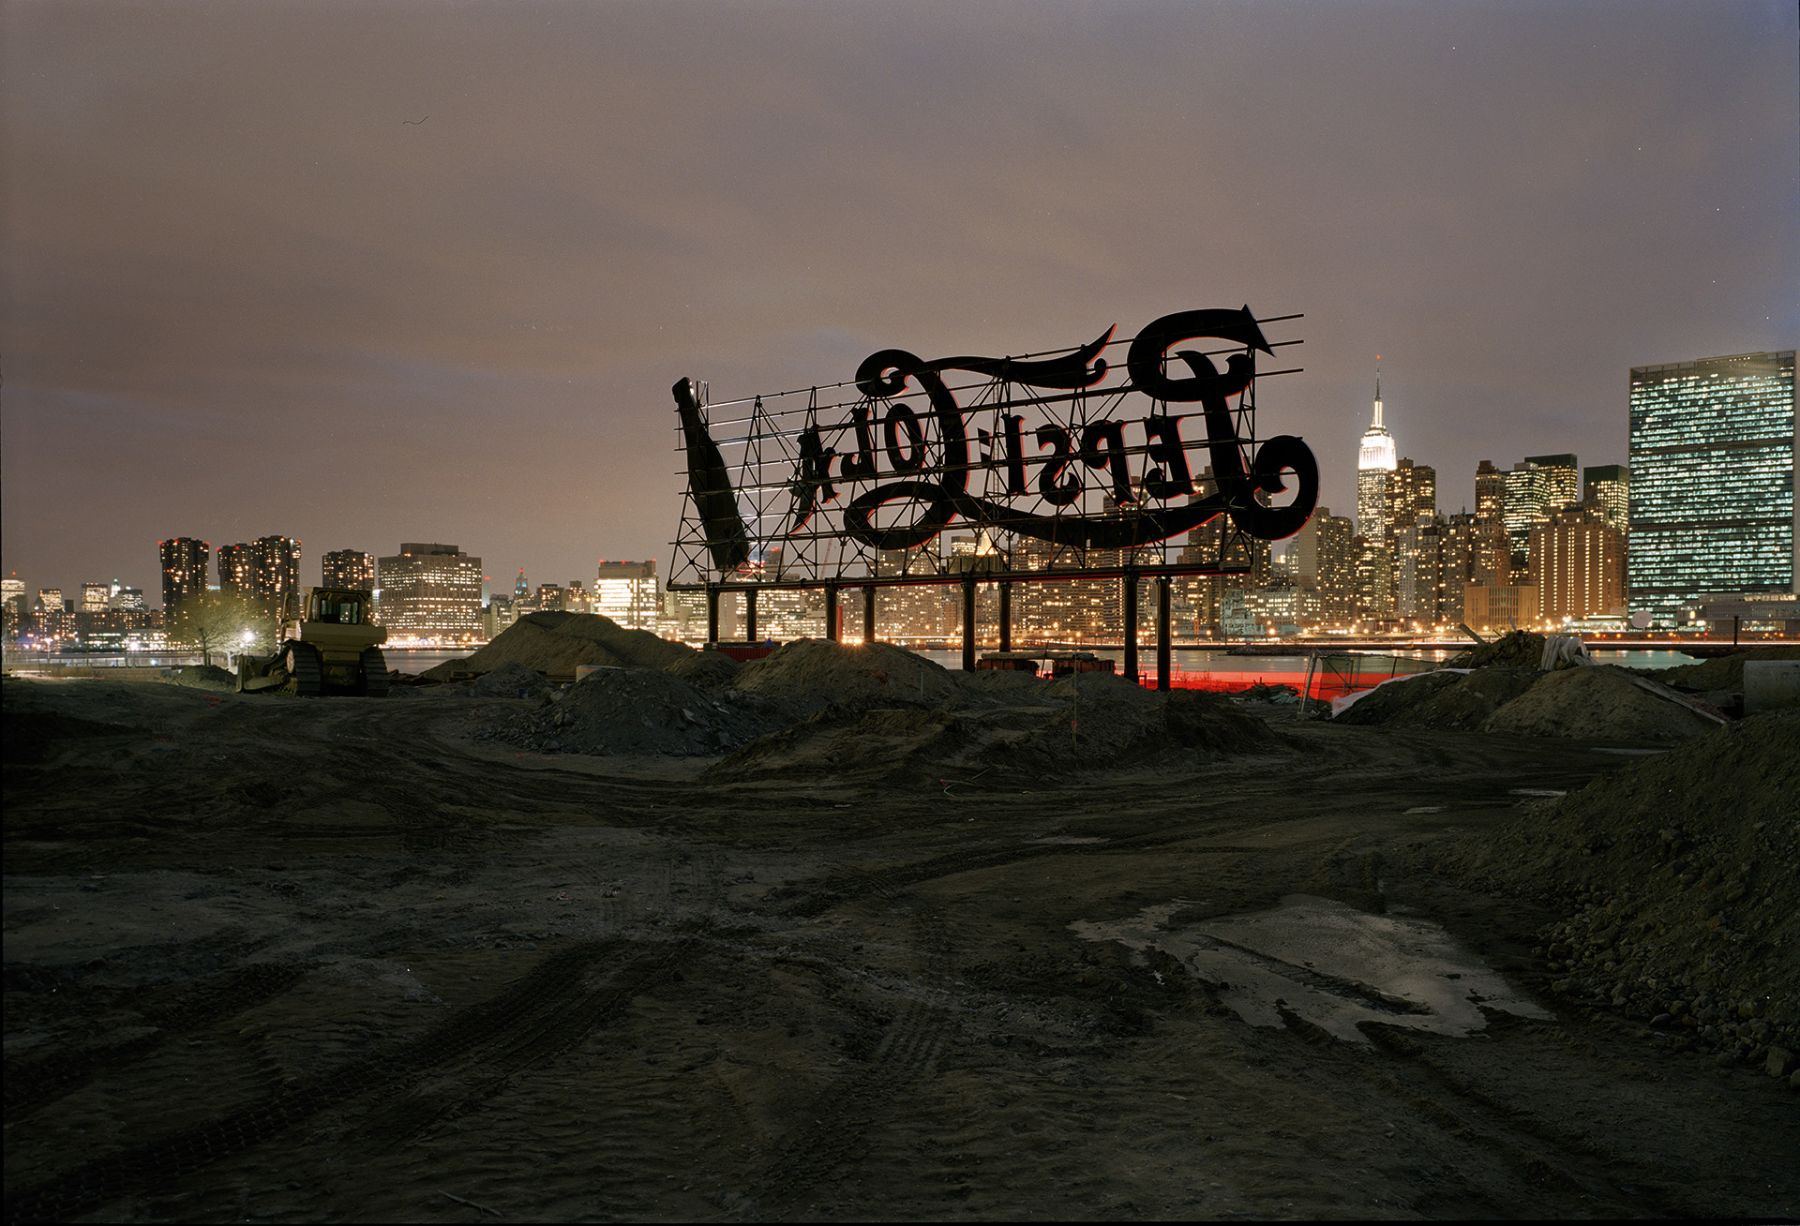 Pepsi-Cola Sign, 2008, Chromogenic Print, available in: 20 x 24 inches, edition of 15; 30 x 40 inches, edition 15; and 40 x 50 inches,